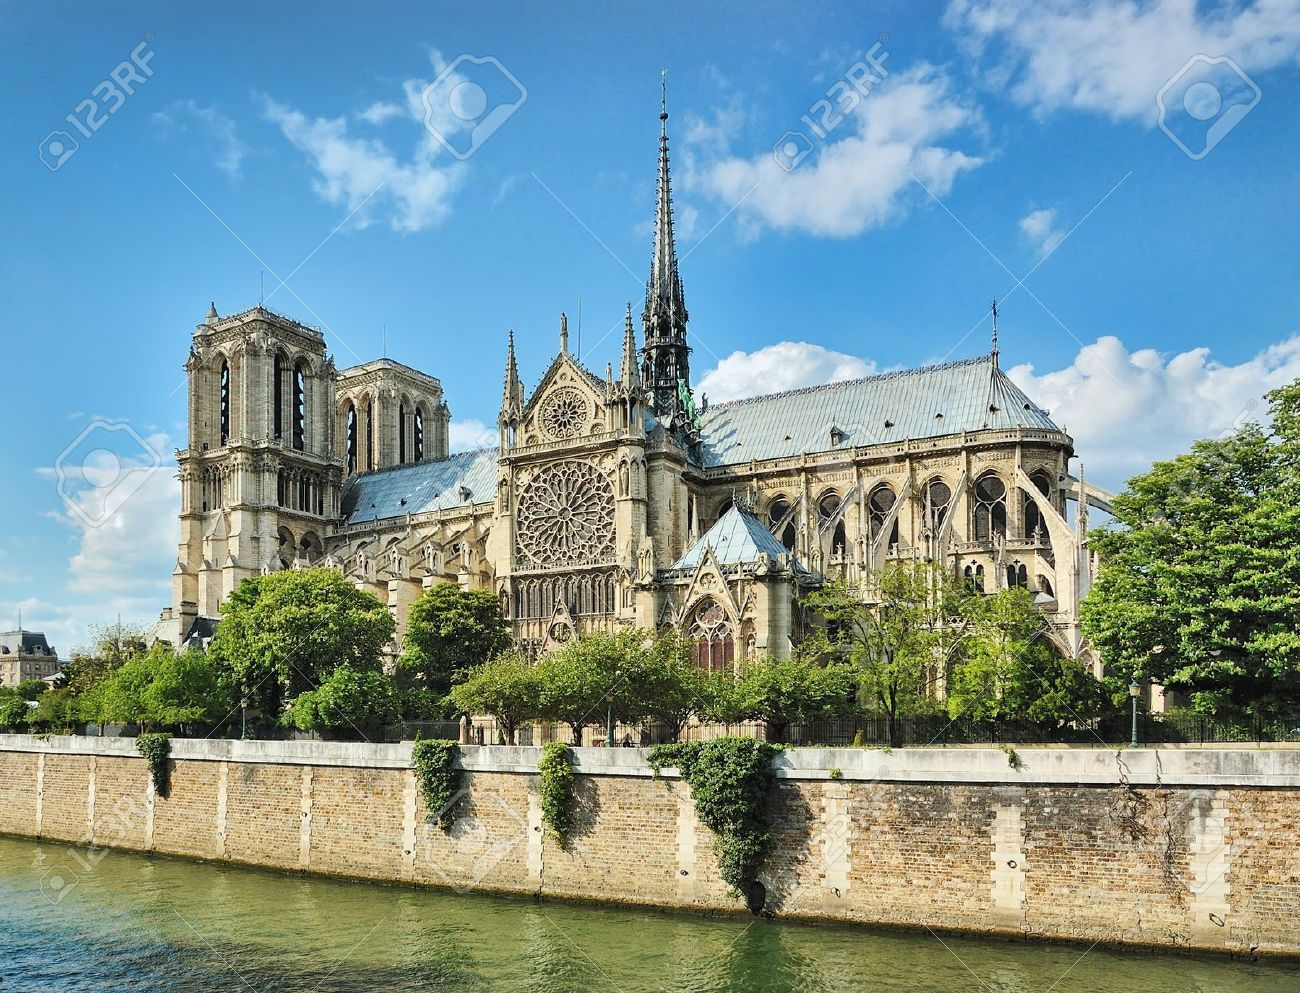 Image result for Notre Dame from the Seine images